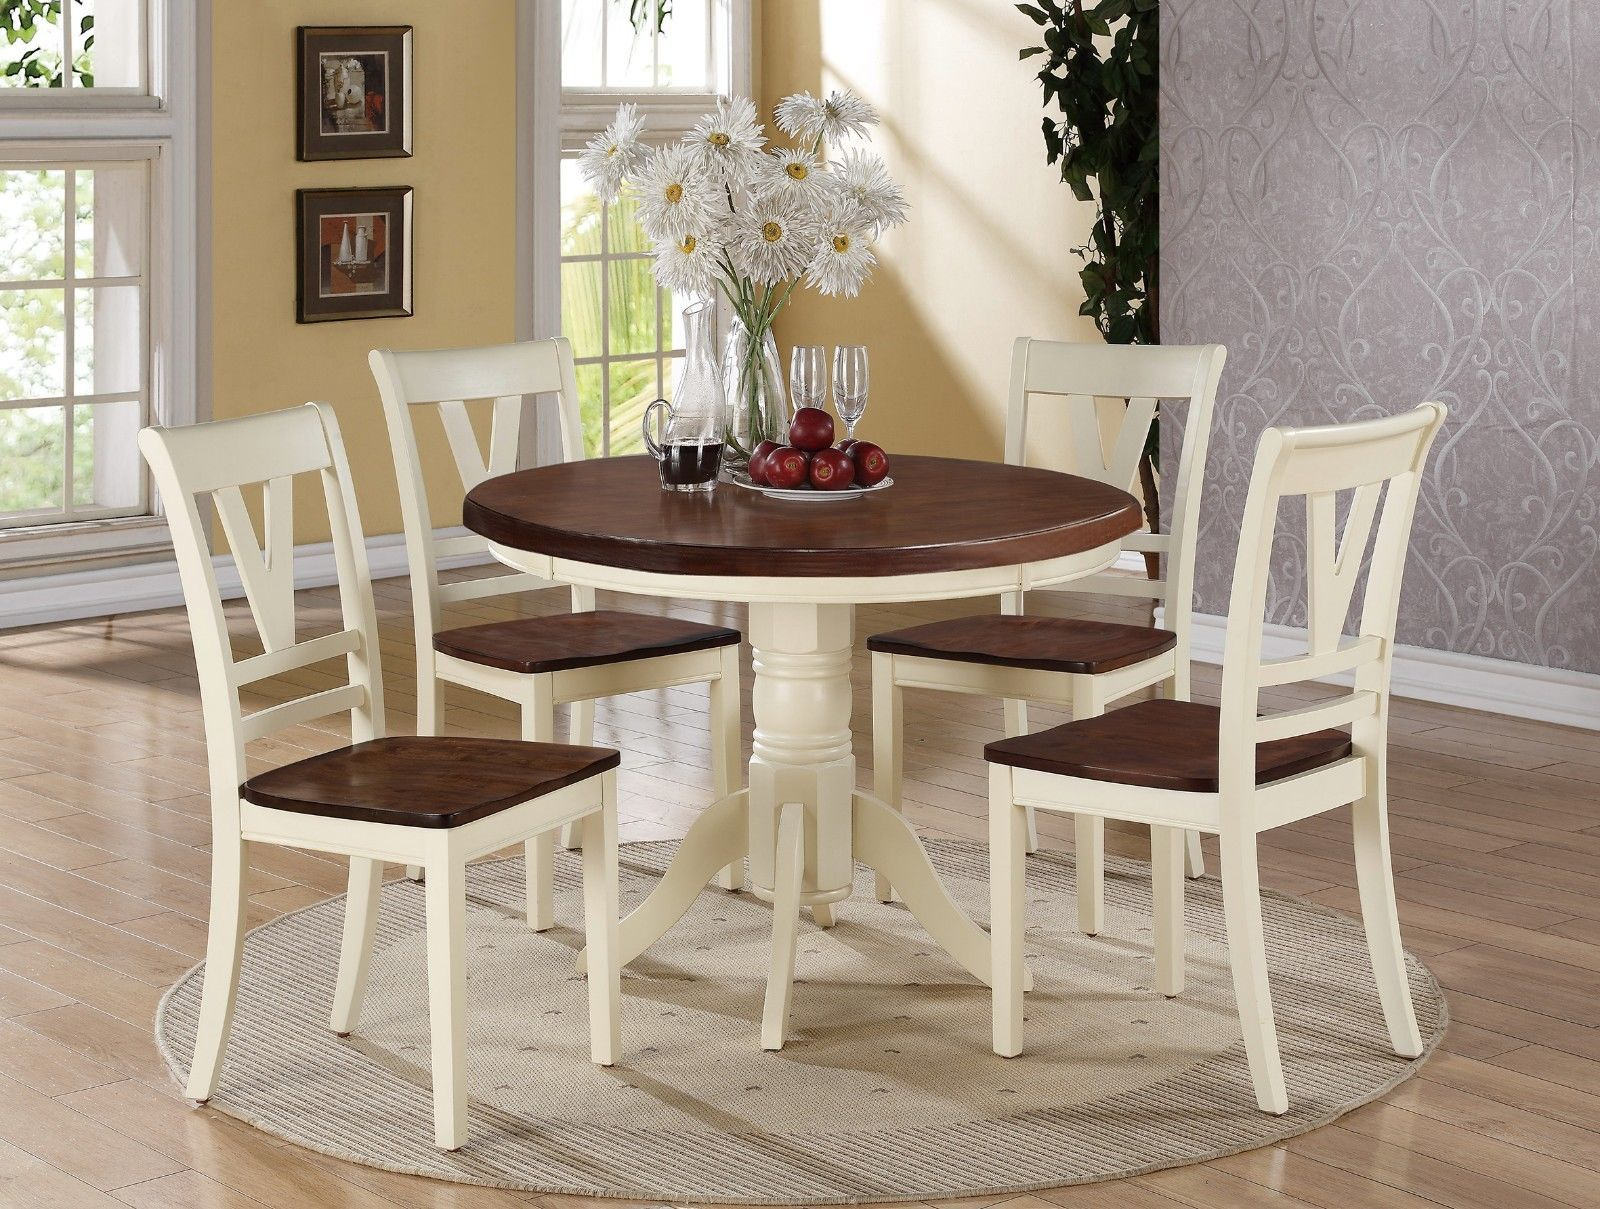 5 Pc Country 2 Tone Cream Cherry Wood Round Dining Table Side